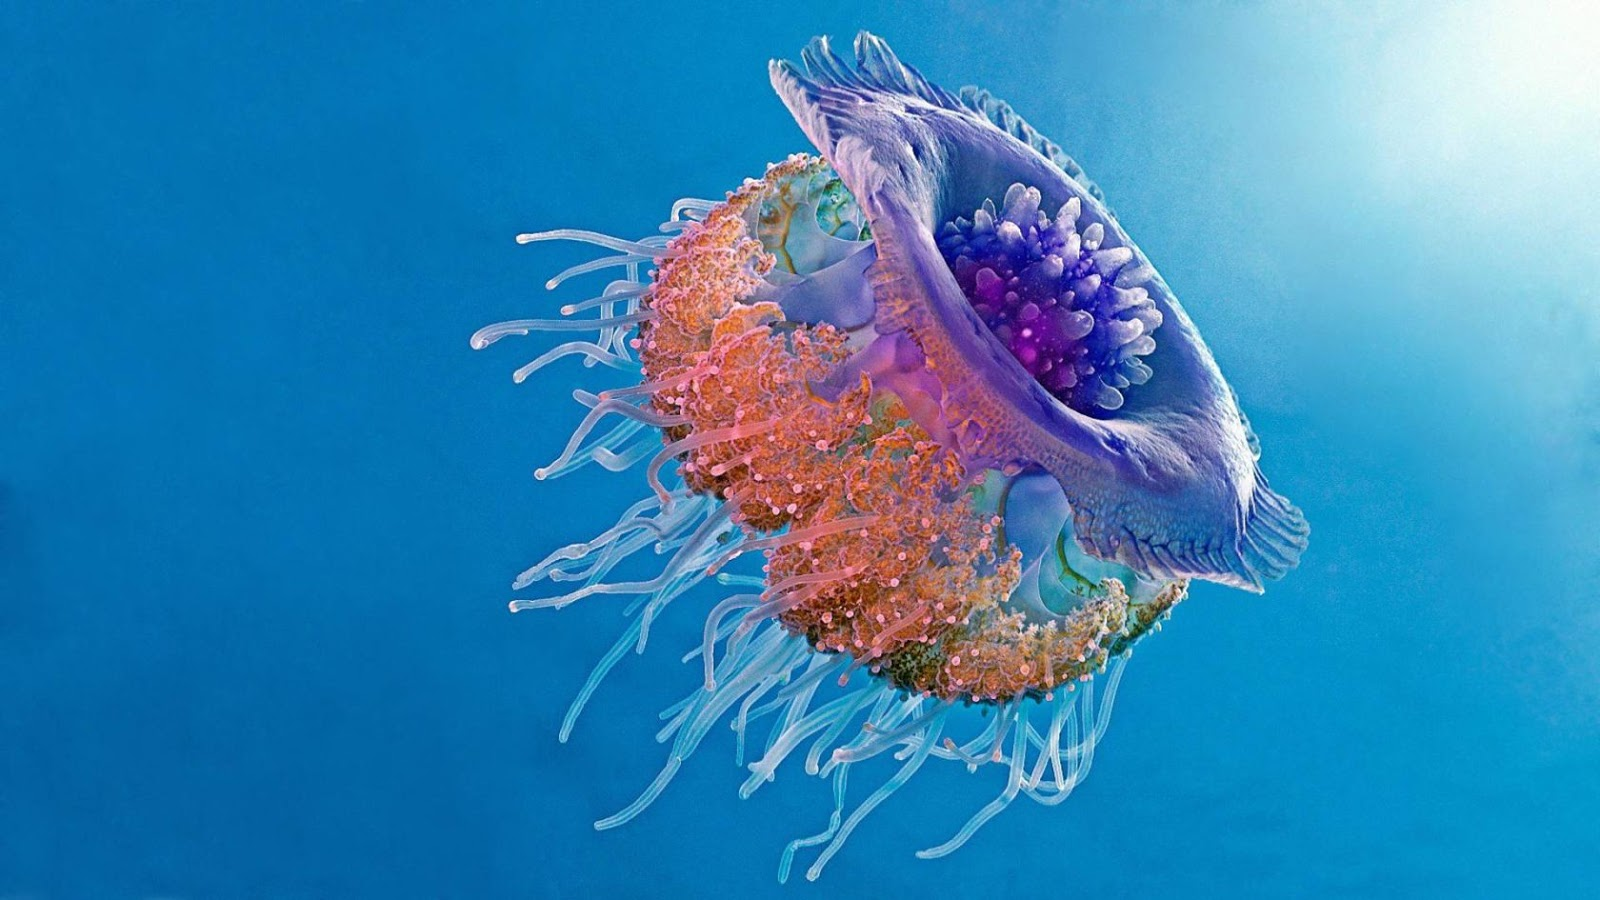 25 Amazing Jellyfish Facts for Kids and Grown Ups | All ...